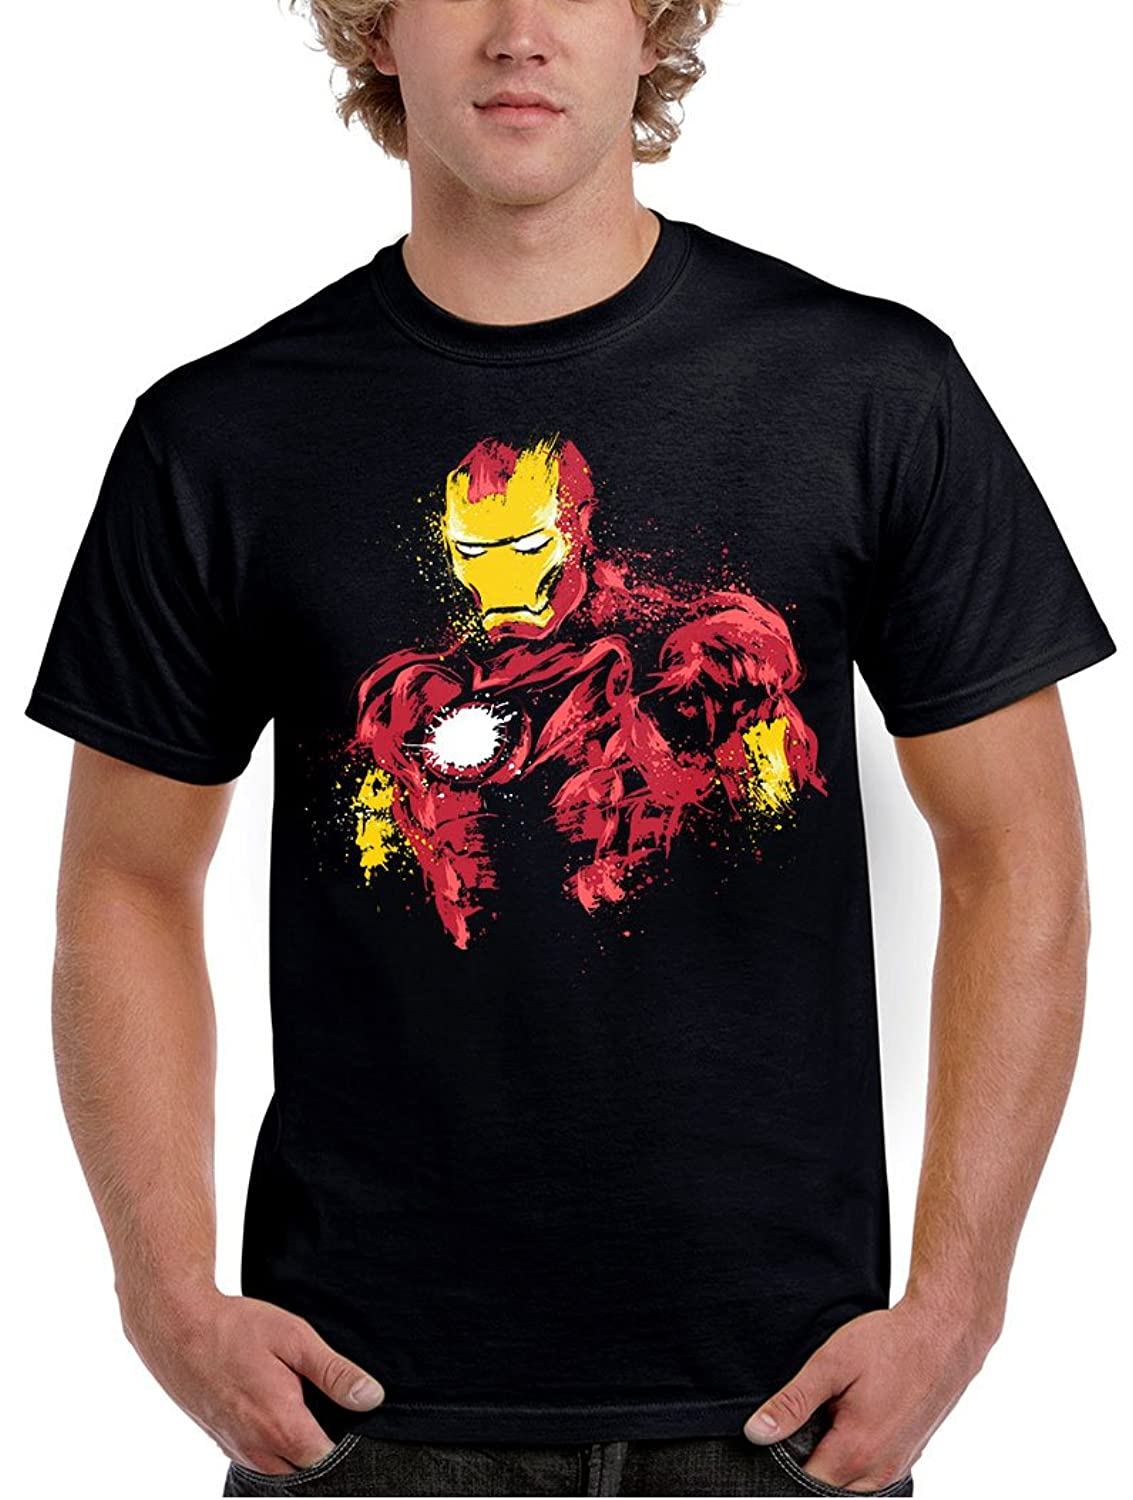 1070-Camiseta Iron Power (Dr.Monekers) iOWdy